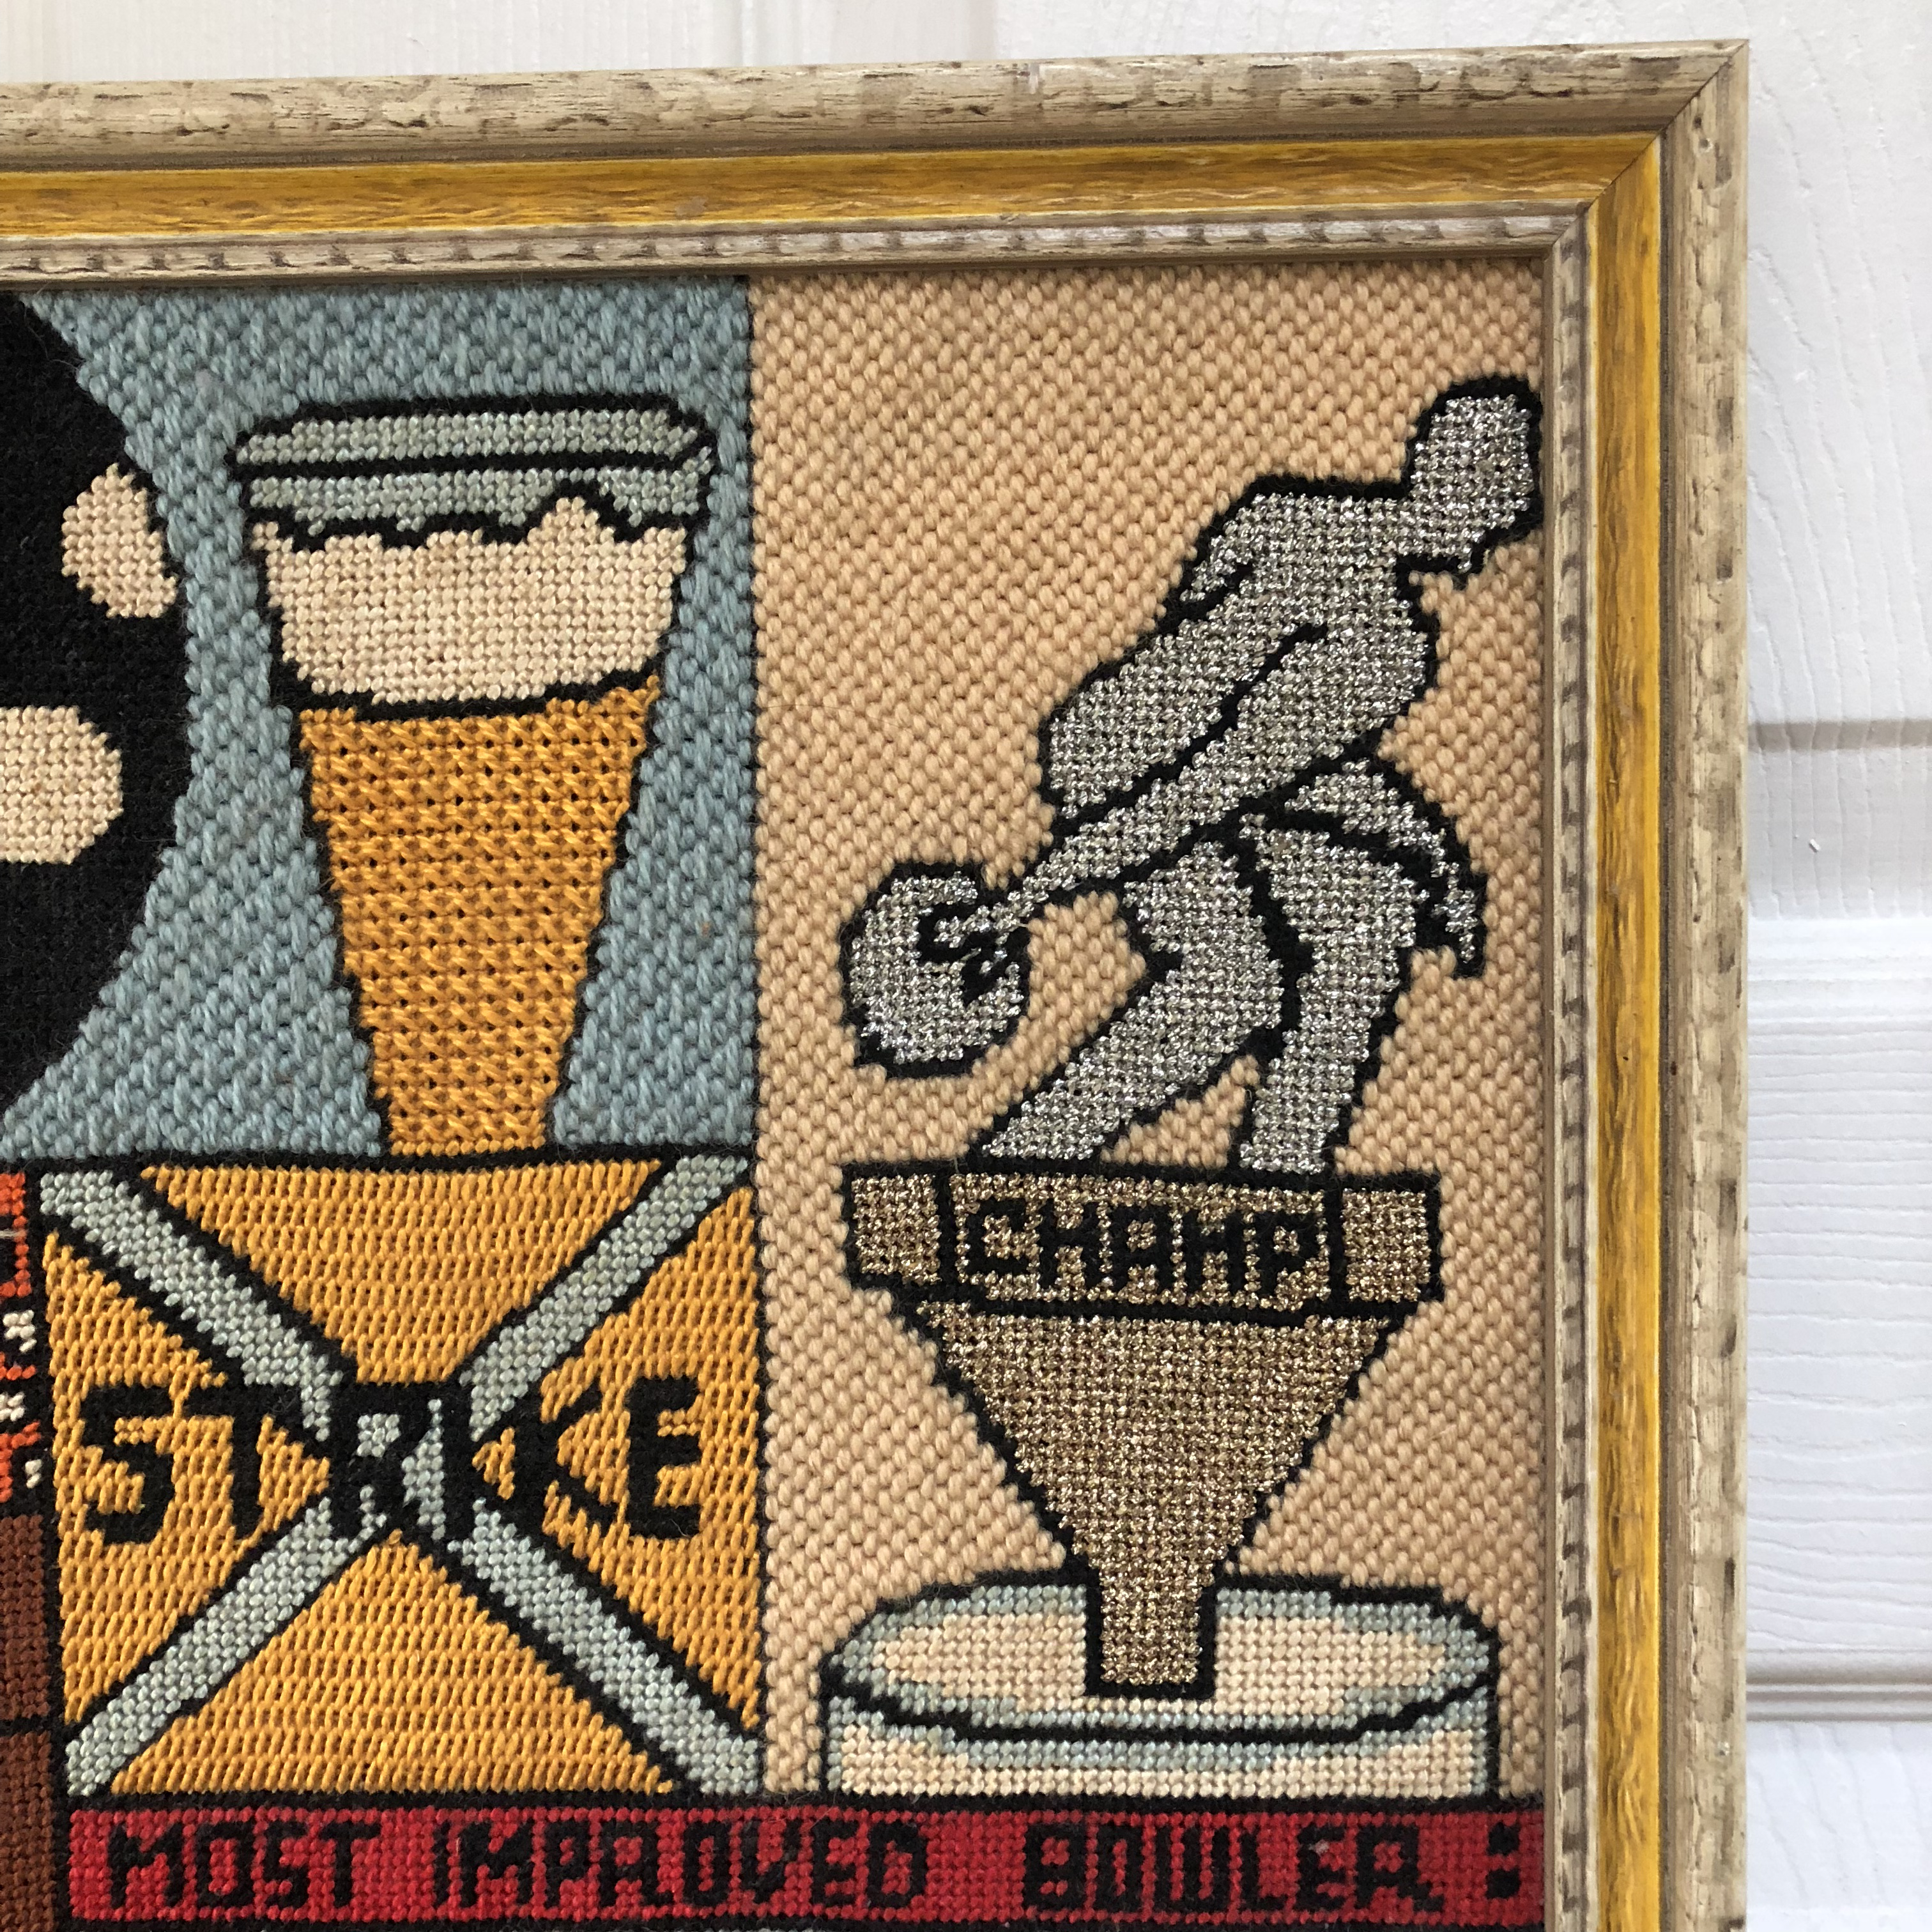 Vintage Most Improved Bowler Embroidery Artwork Chairish